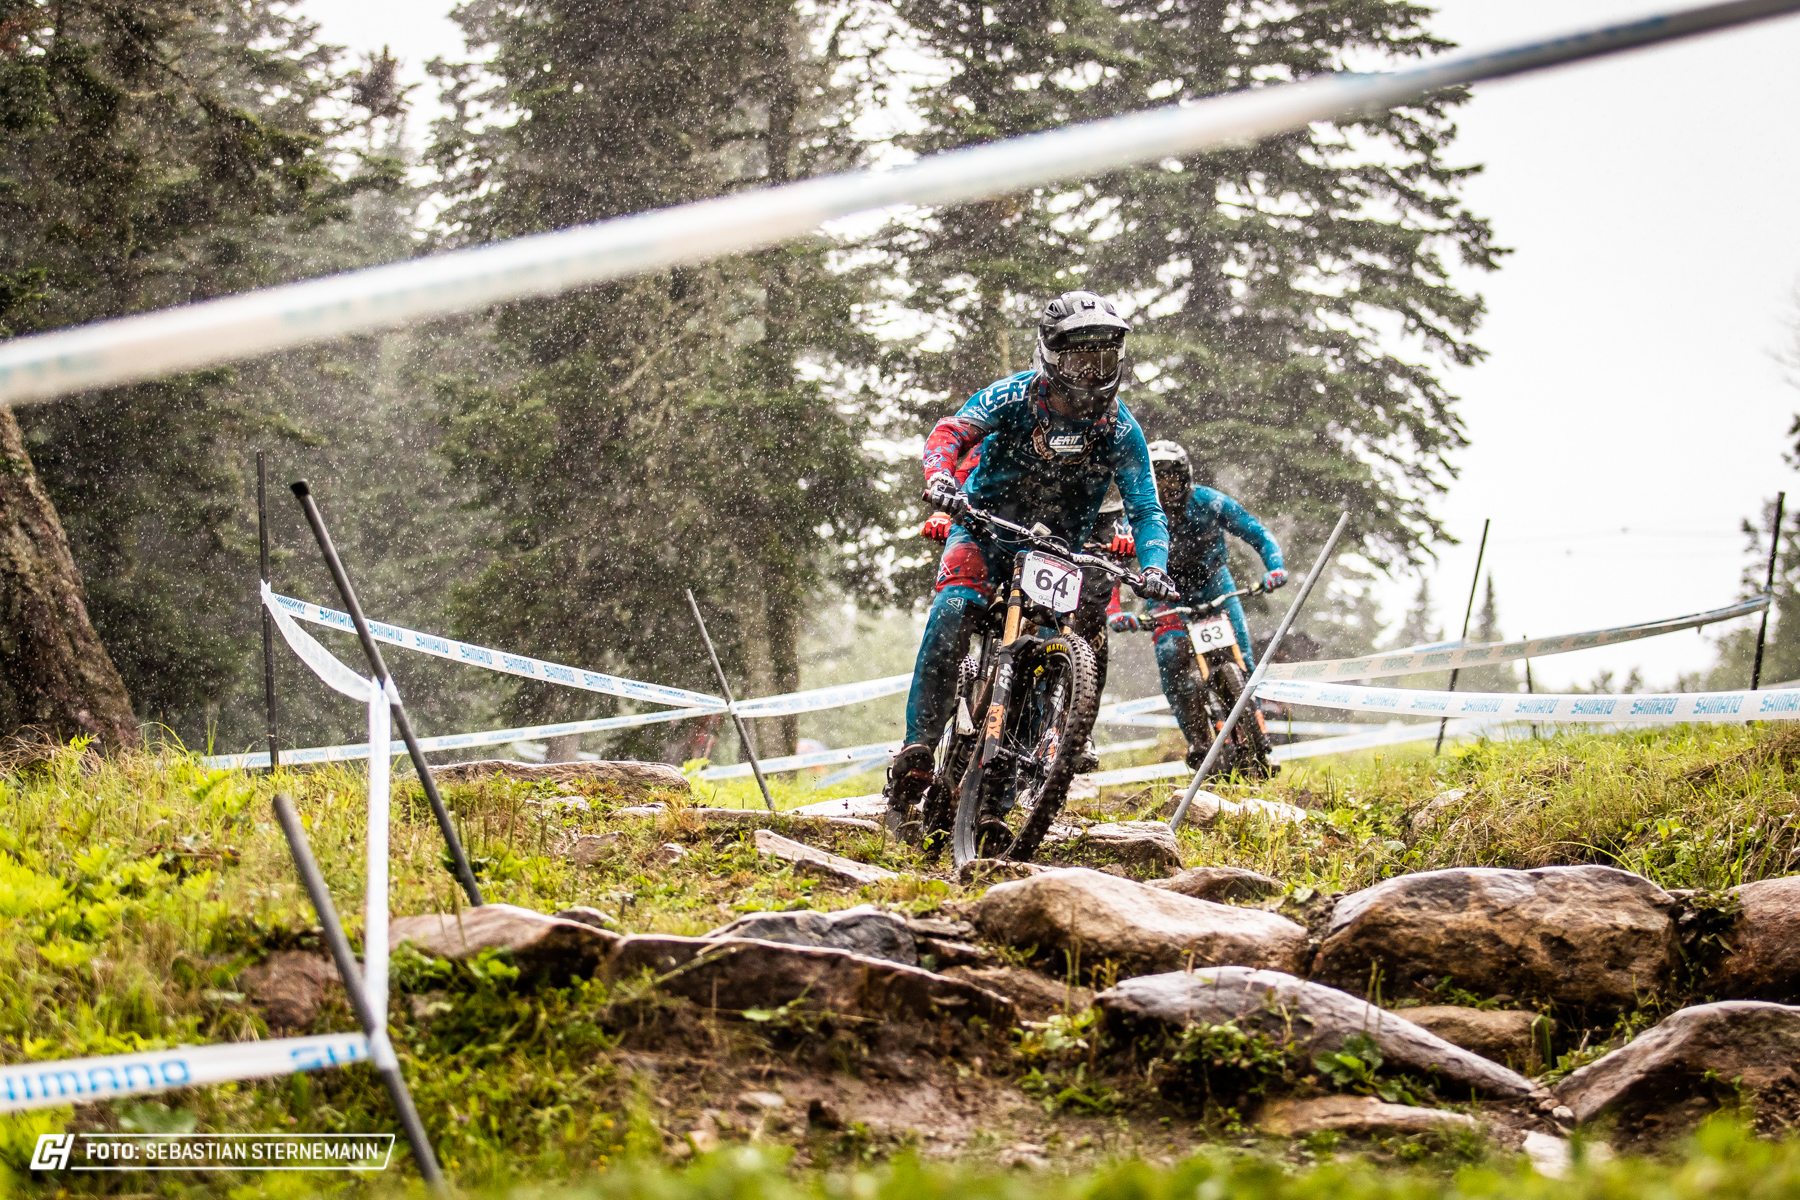 UCI DHI Worldcup MSA Thursday 1802 by Sternemann